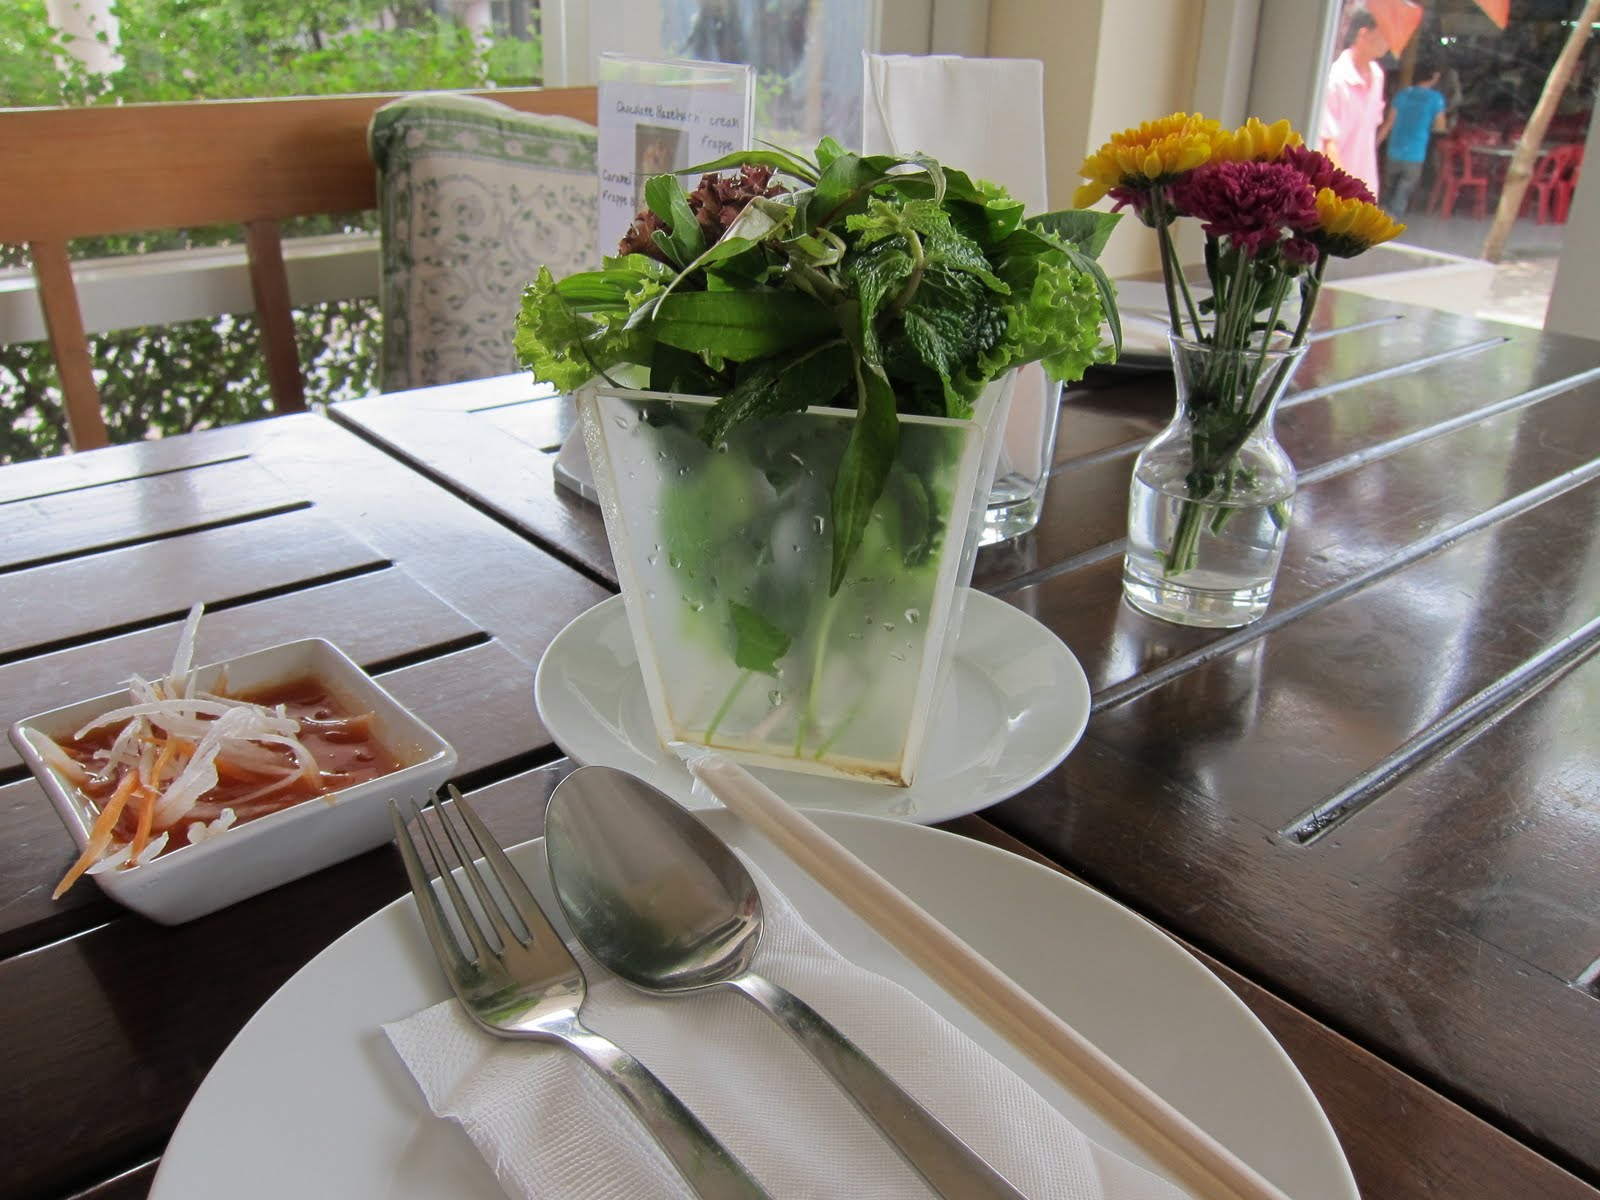 Simple restaurant table setting - The Table Setting Is Simple But We Were Reminded Immediately That We Were In A Vietnamese Restaurant When They Placed A Container Full Of Fresh Herbs And A